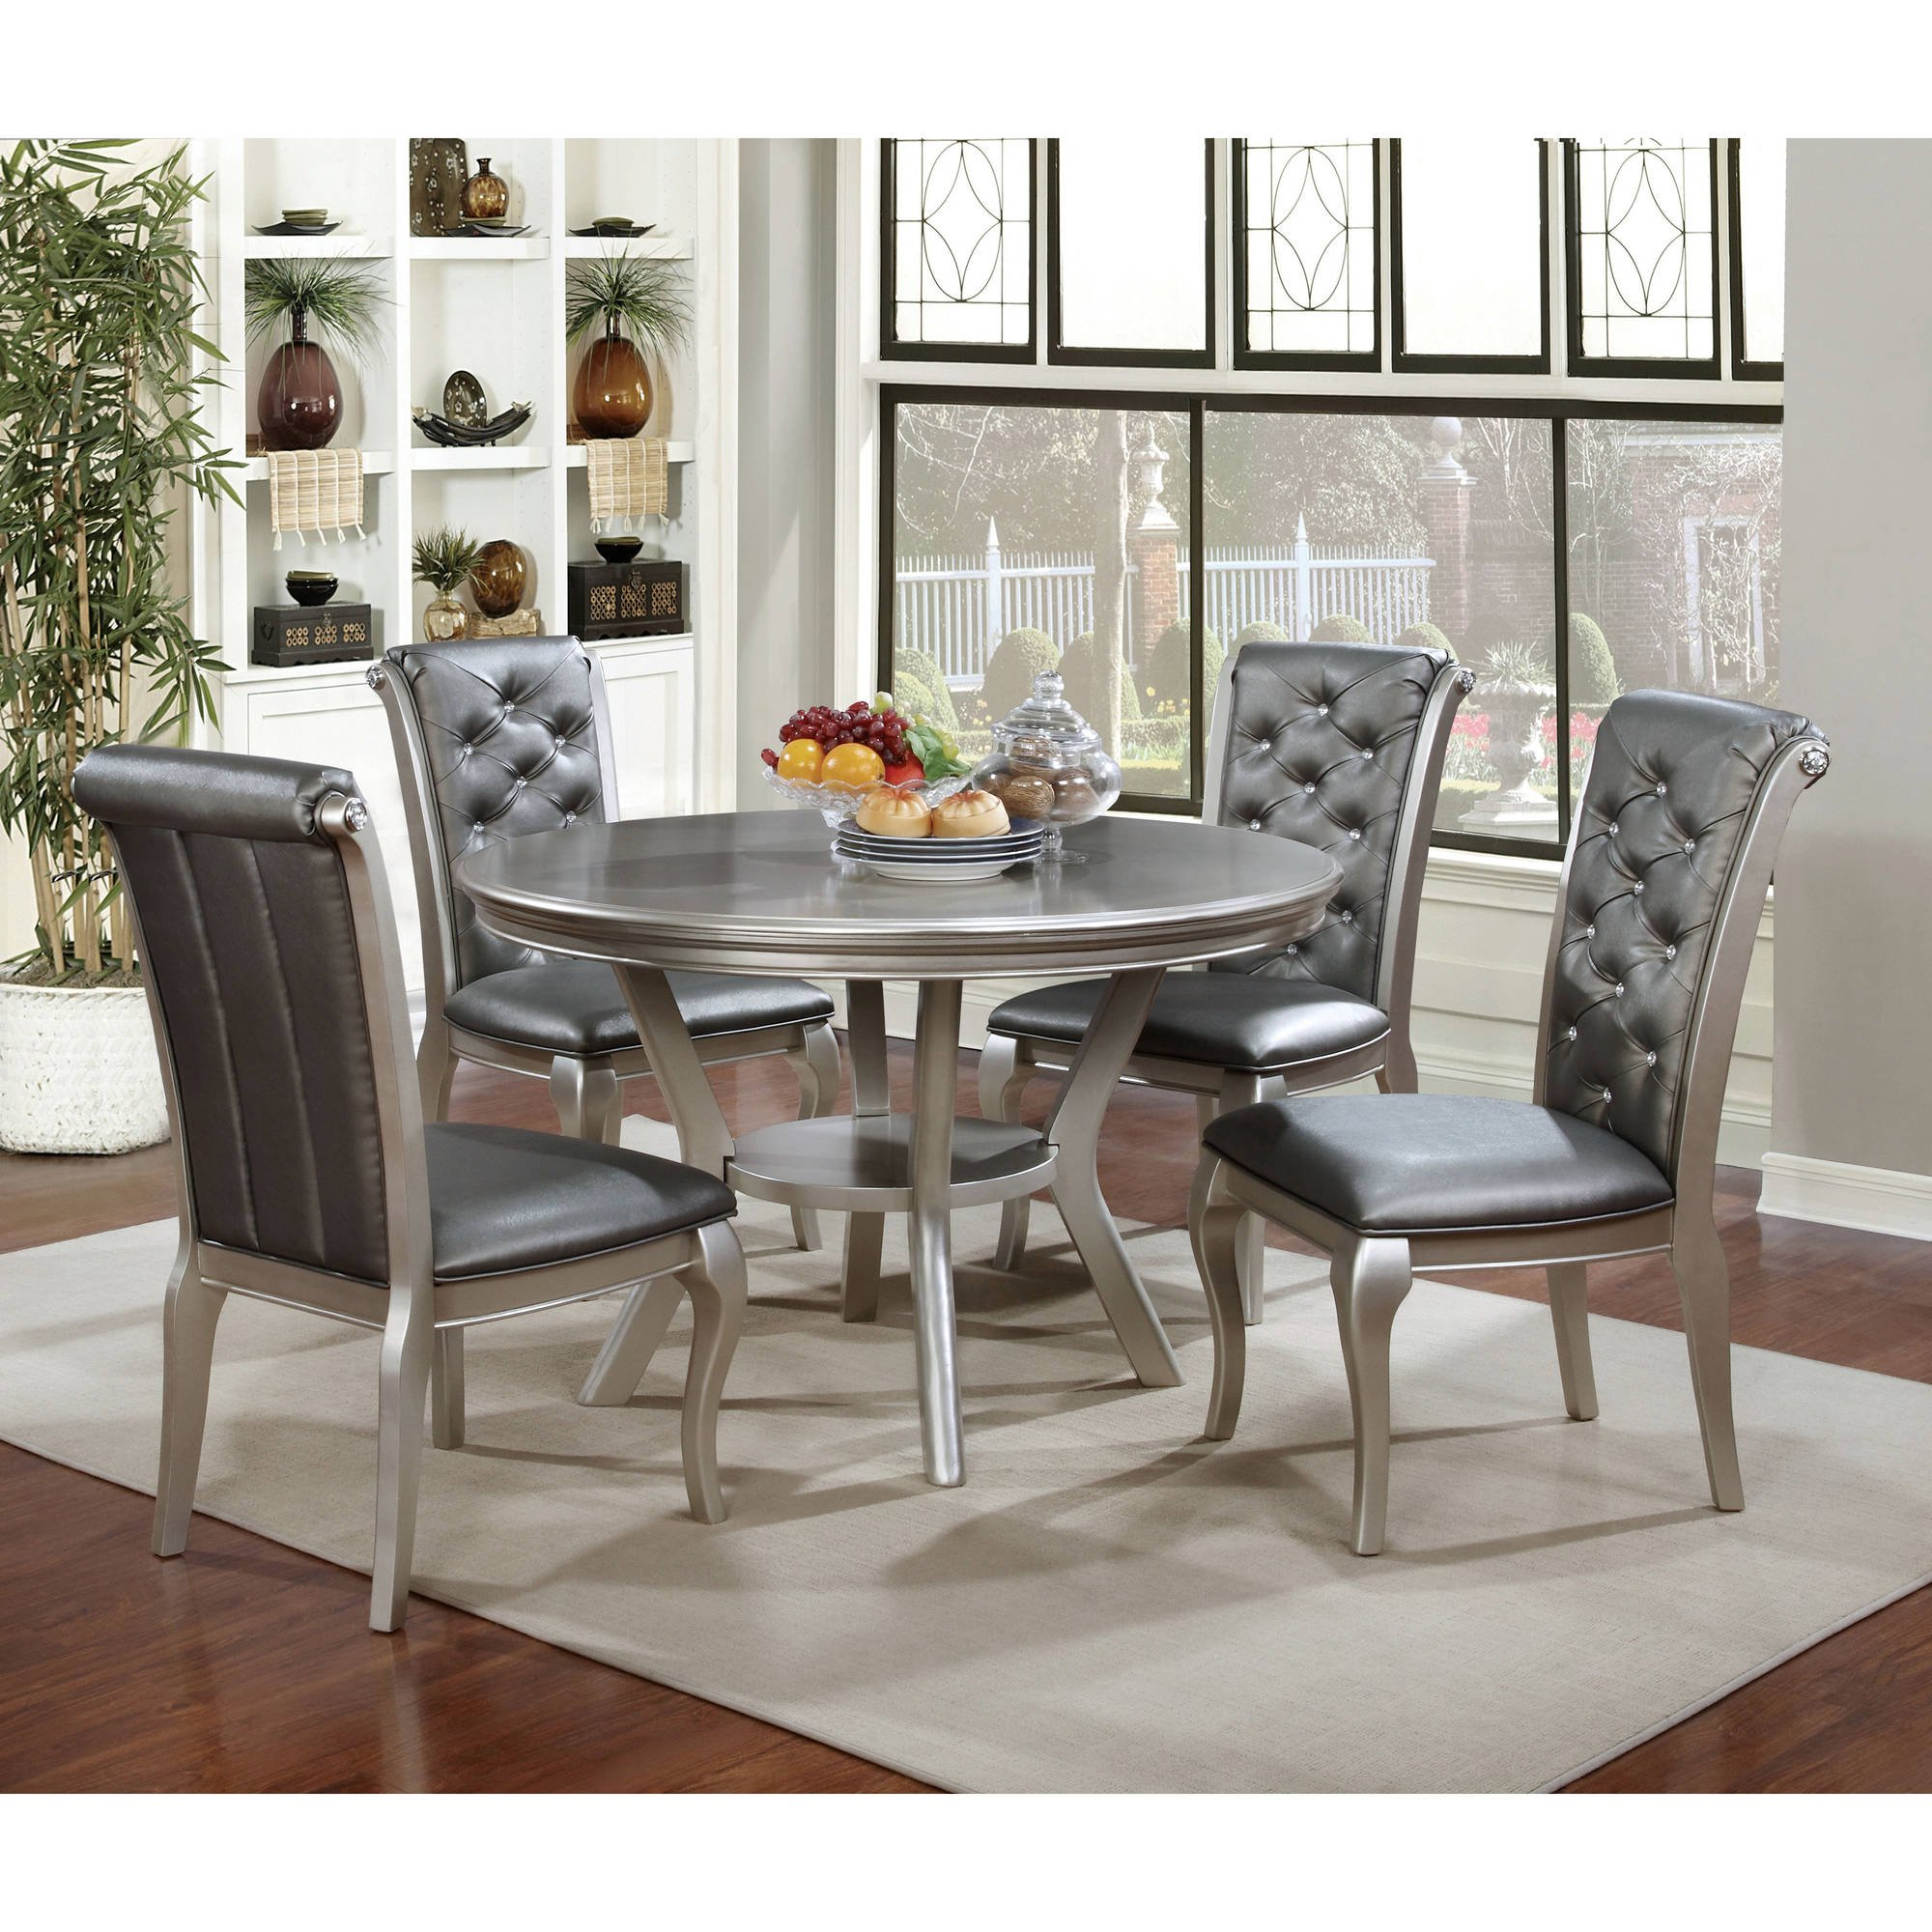 Furniture of America Minham Contemporary Round Dining Table Silver & Round Kitchen Table Sets